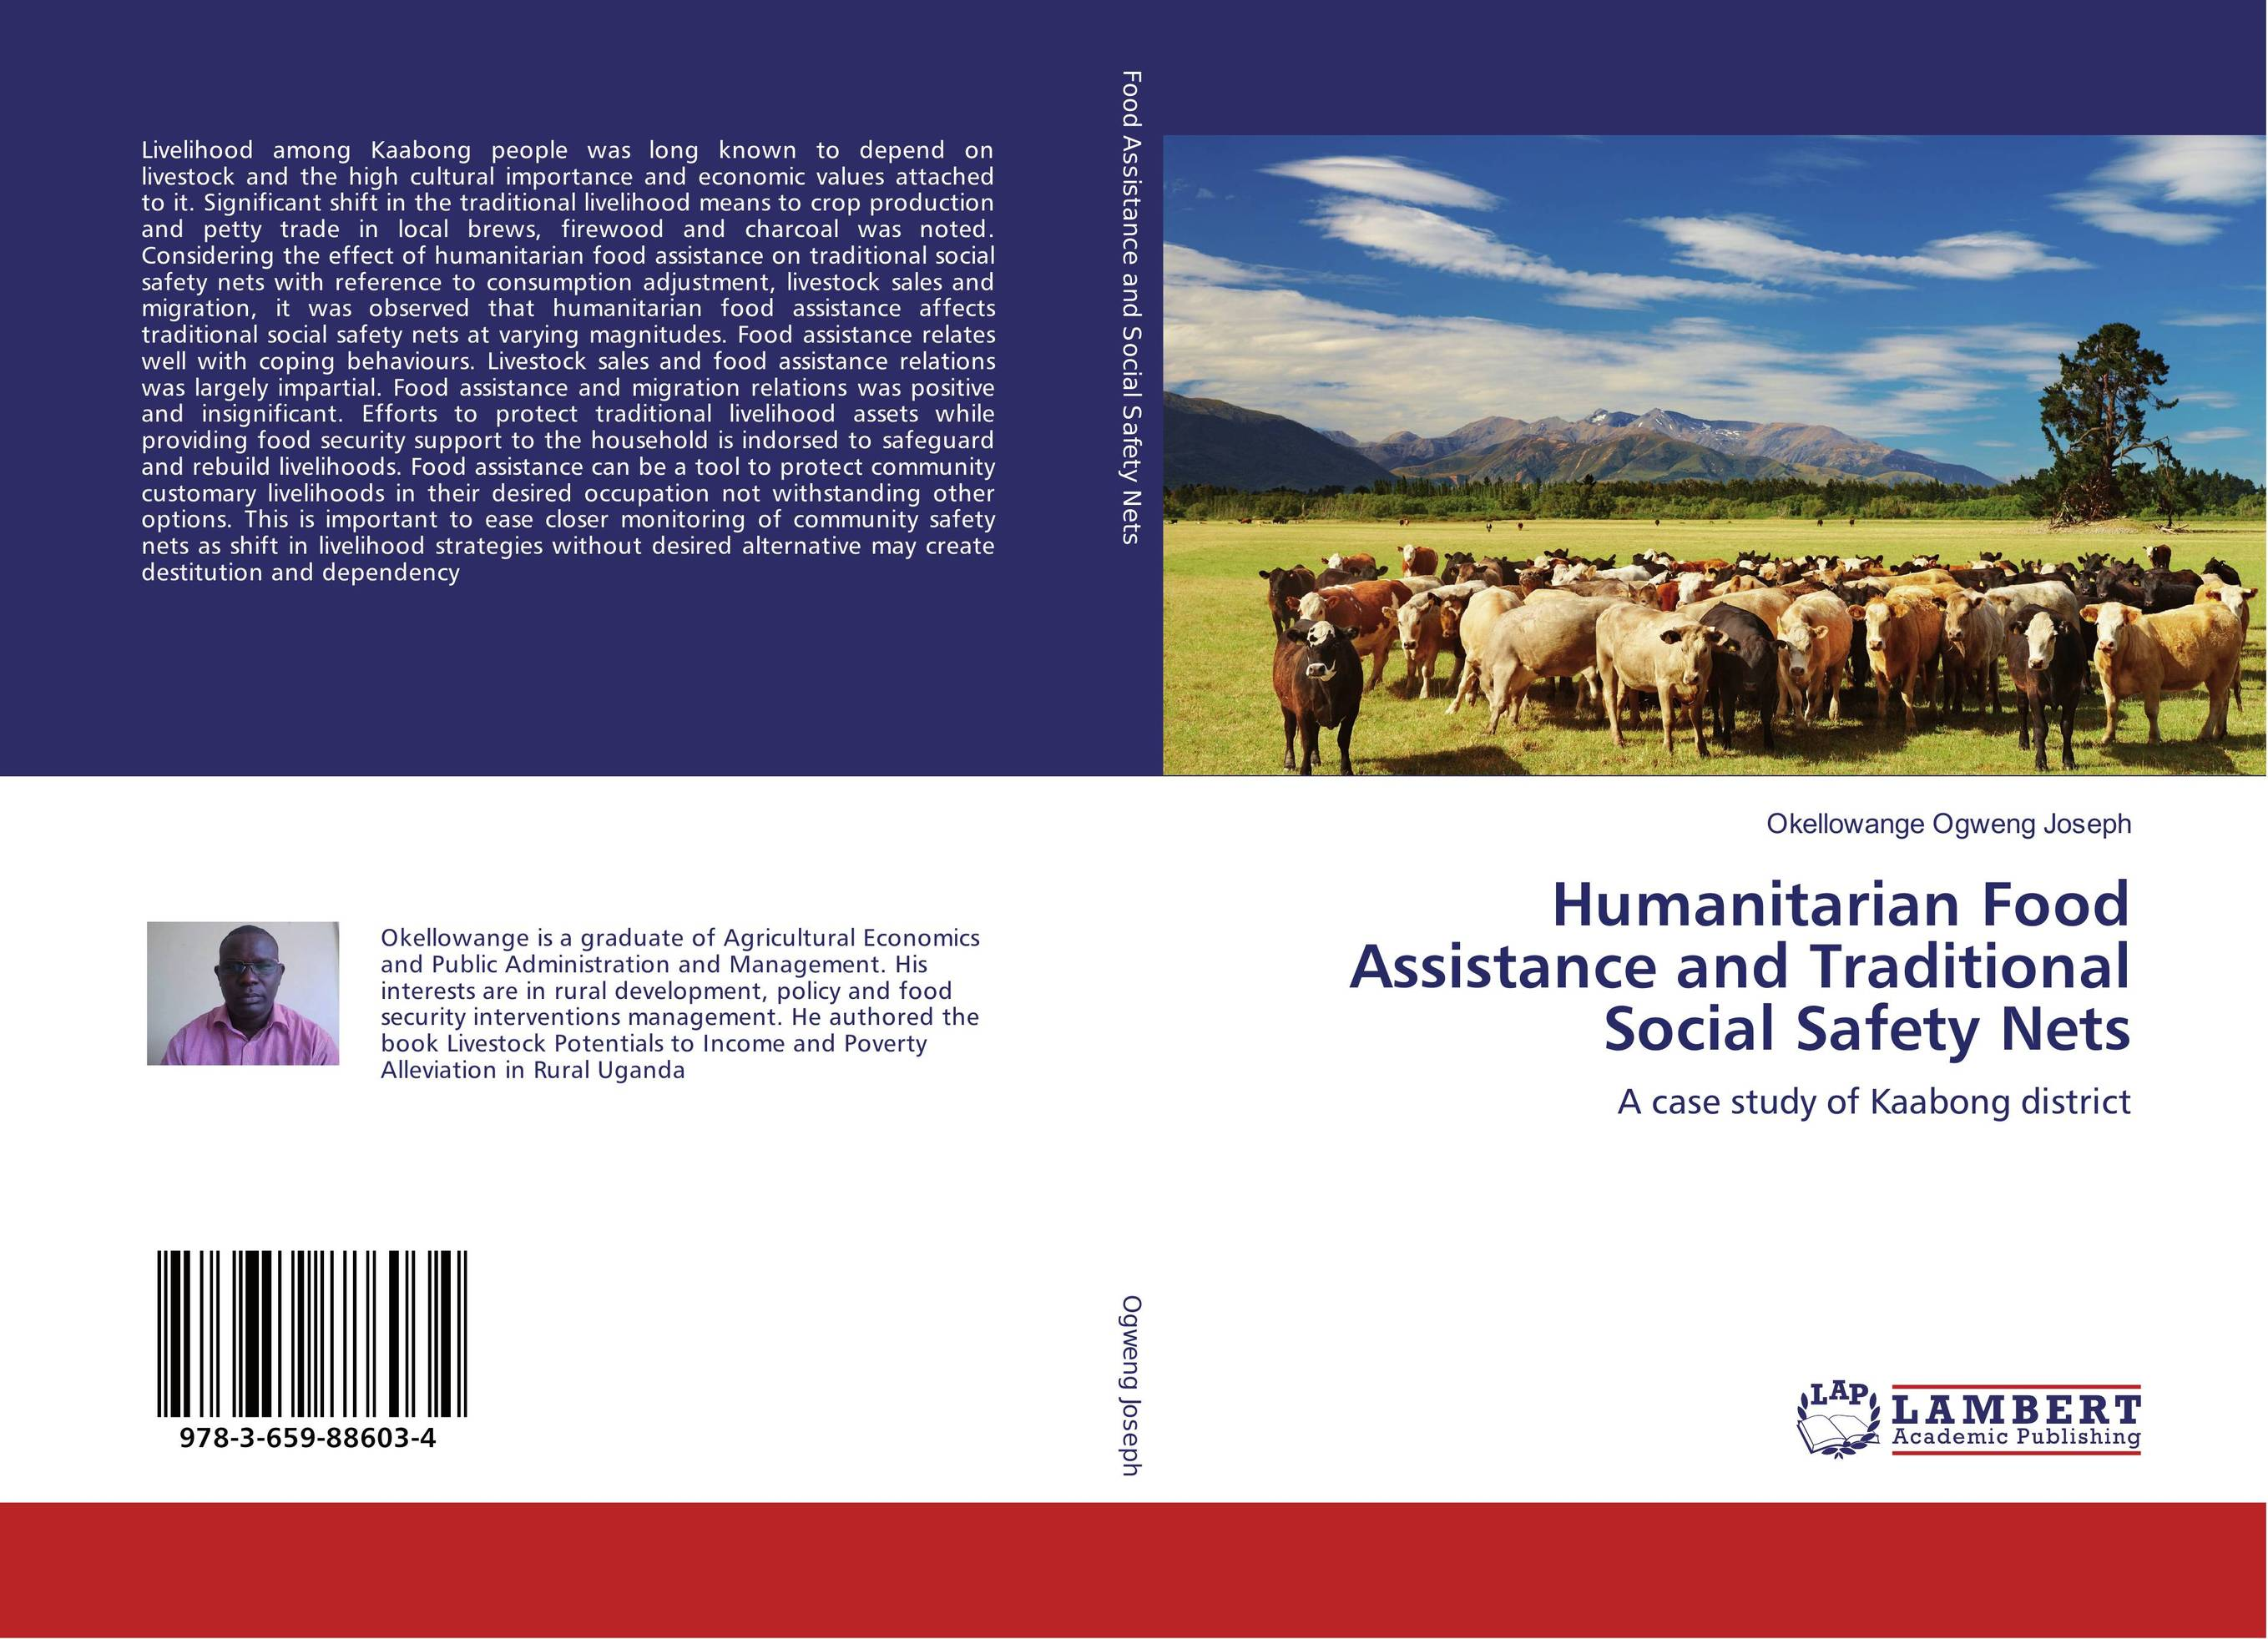 Humanitarian Food Assistance and Traditional Social Safety Nets